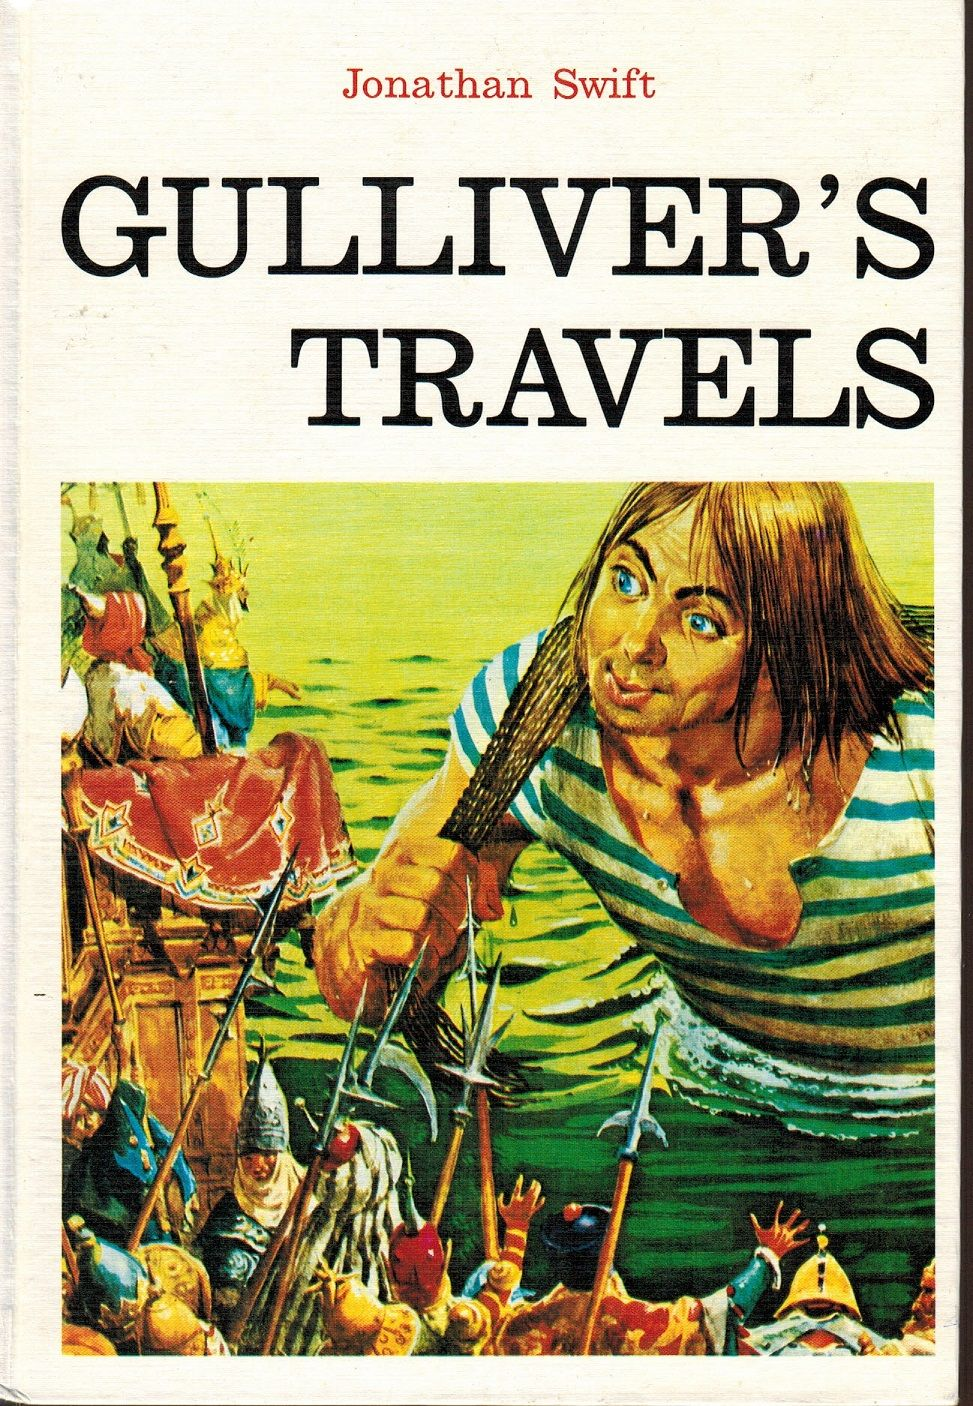 use satire jonathan swift s gulliver s travels Everything you ever wanted to know about the lilliputians in gulliver's travels gulliver's travels by jonathan swift home / literature / gulliver's travels beautiful, rational horses of the houyhnhnms for all of his giant size, gulliver's mind works mechanically and in terms of.